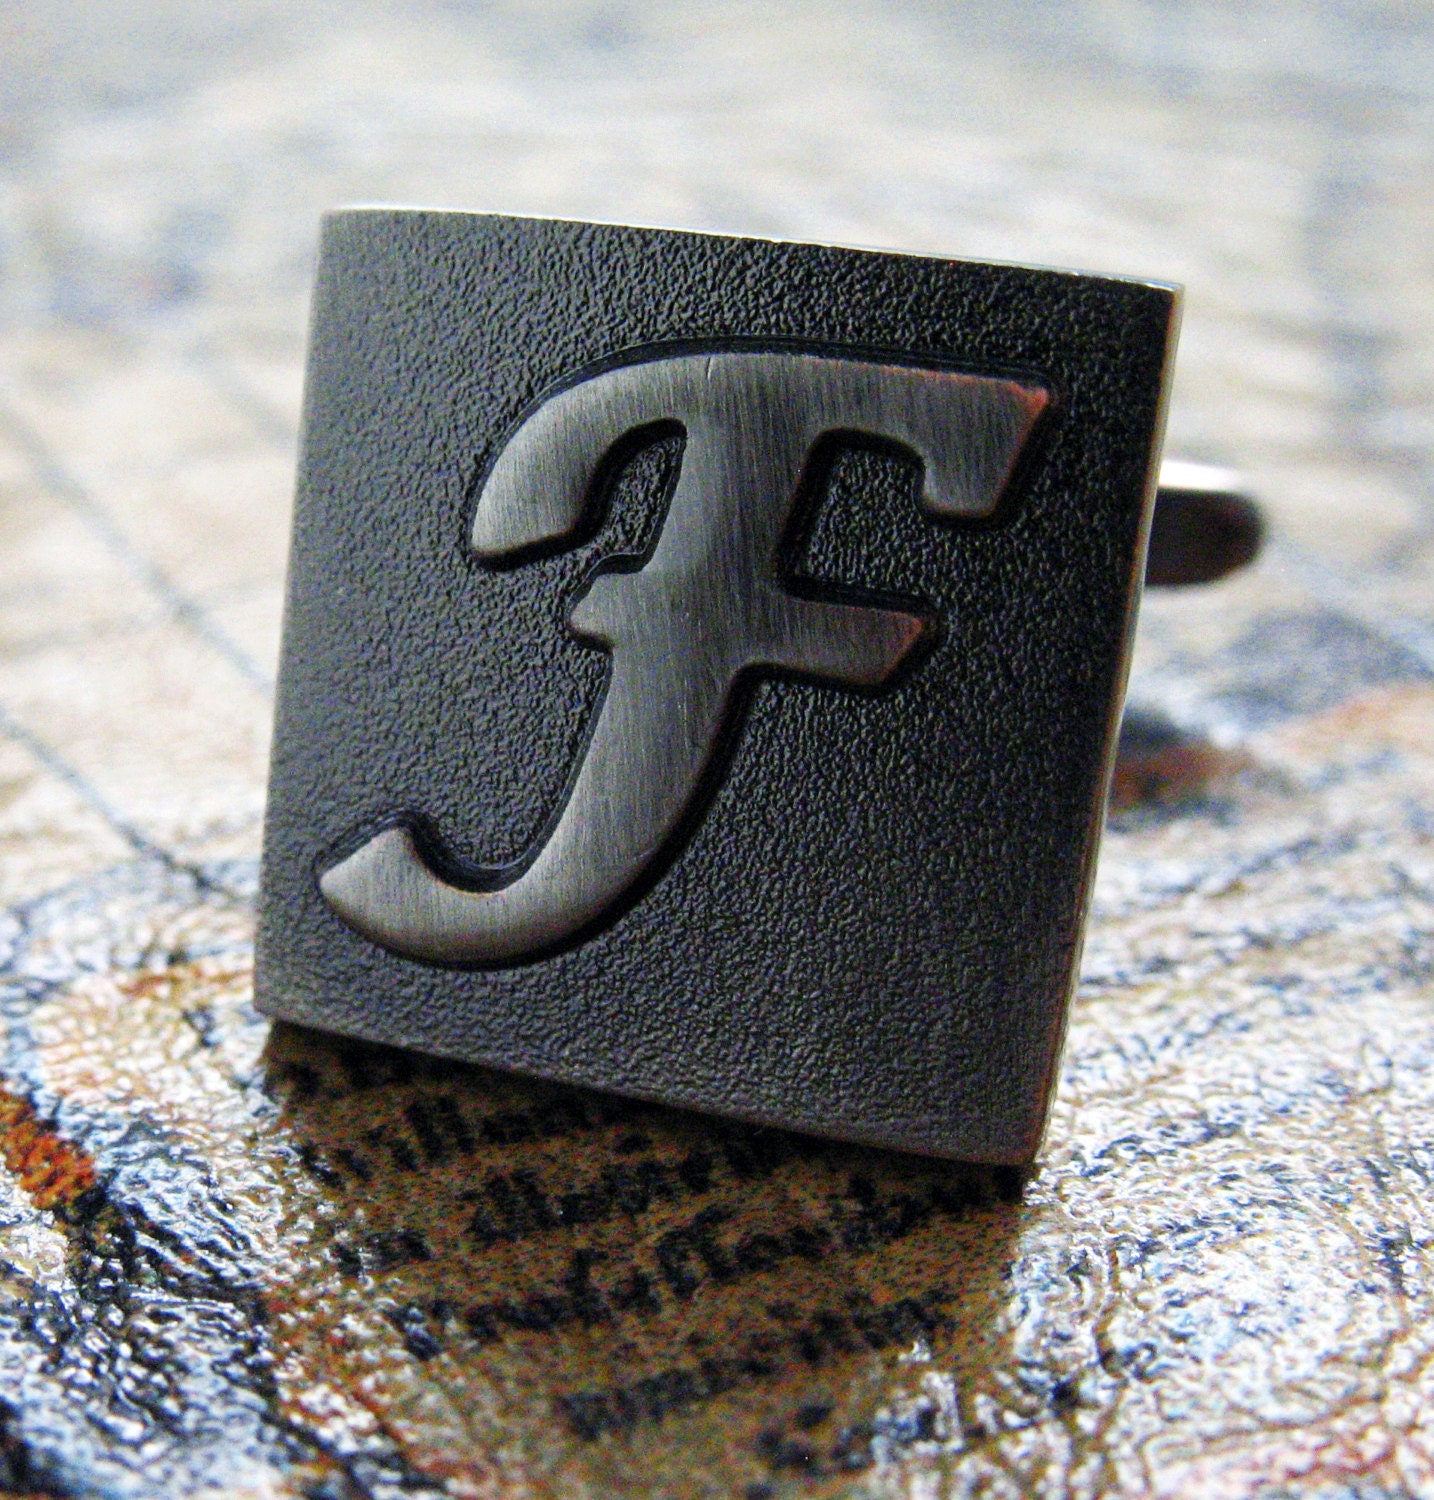 f initial cufflinks gunmetal square 3 d letter english lettering personalized cuff links groom father